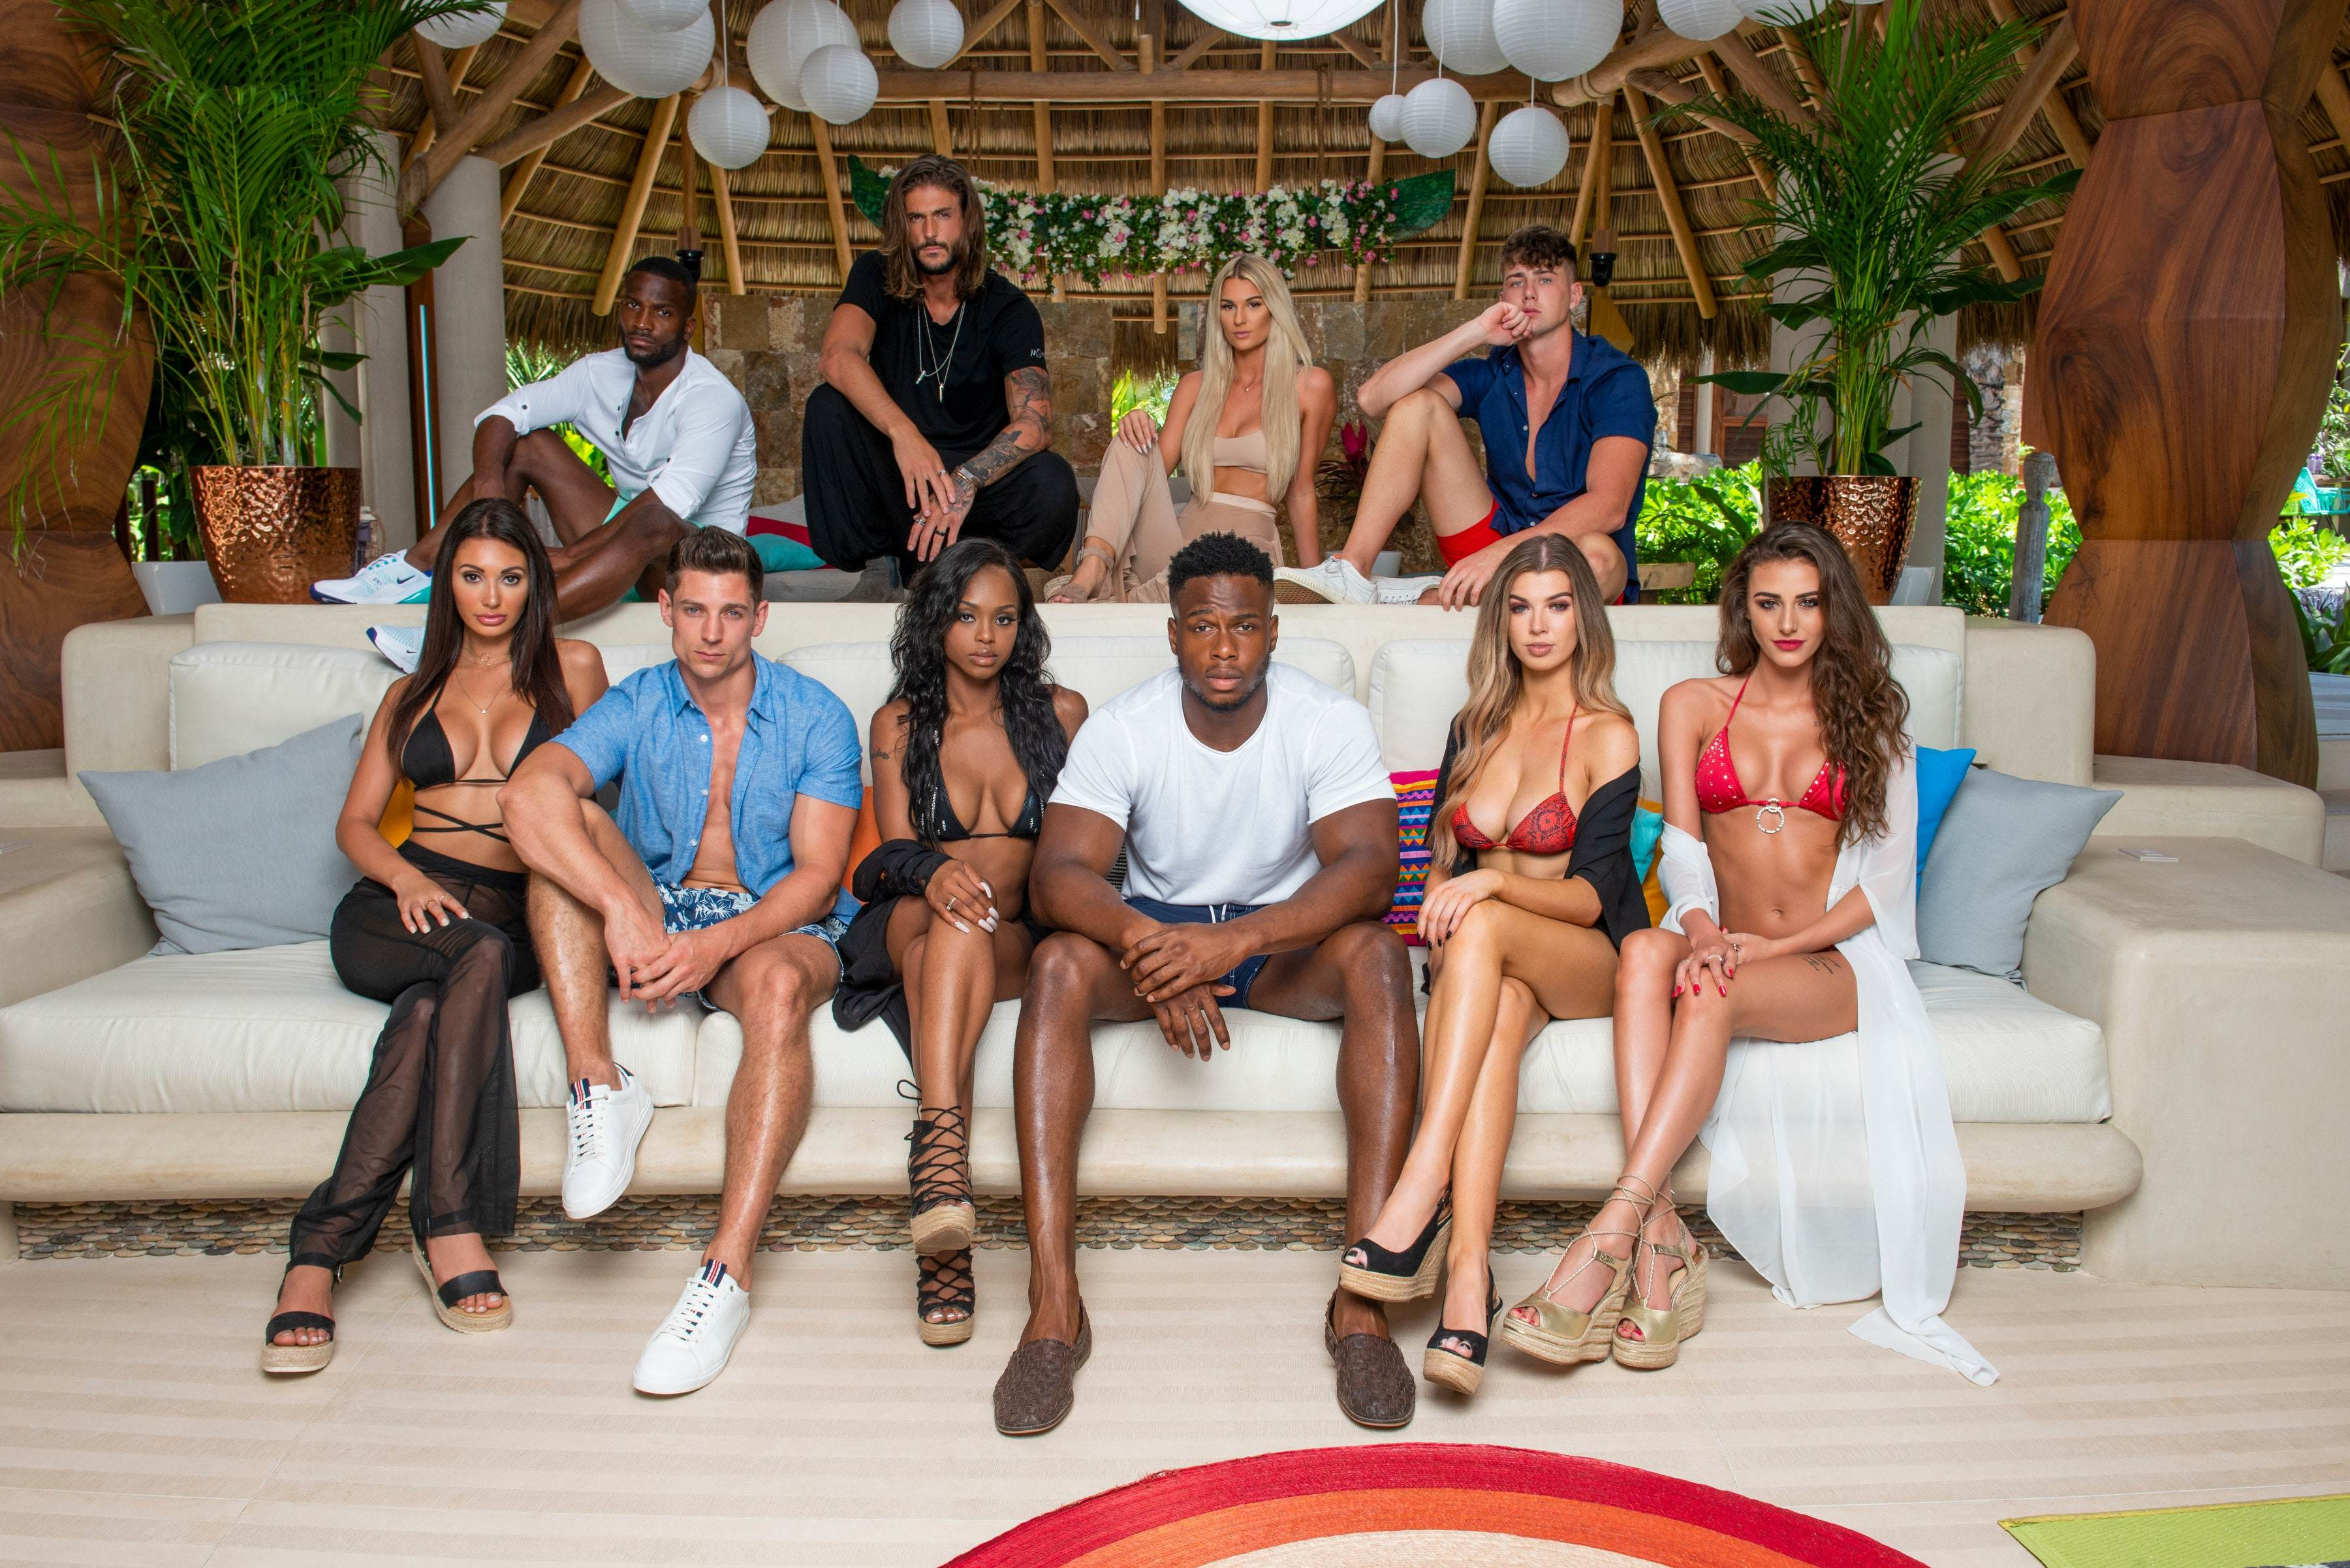 Chloe Veitch with Other Contestants of 'Too Hot To Handle'